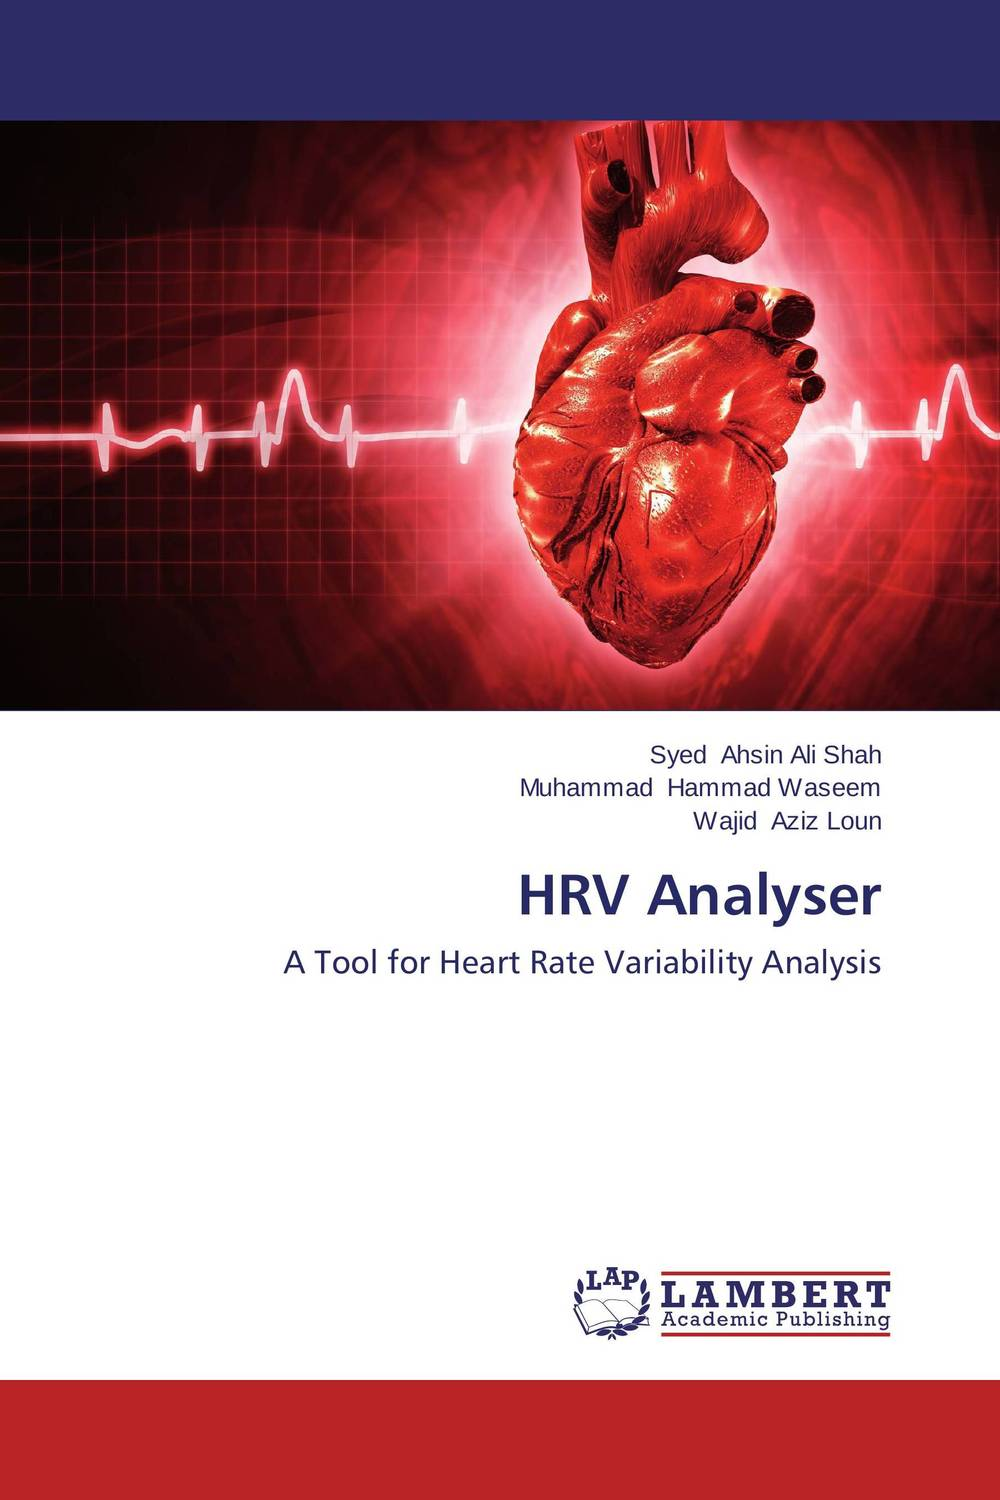 HRV Analyser measuring glycemic variability and predicting blood glucose levels